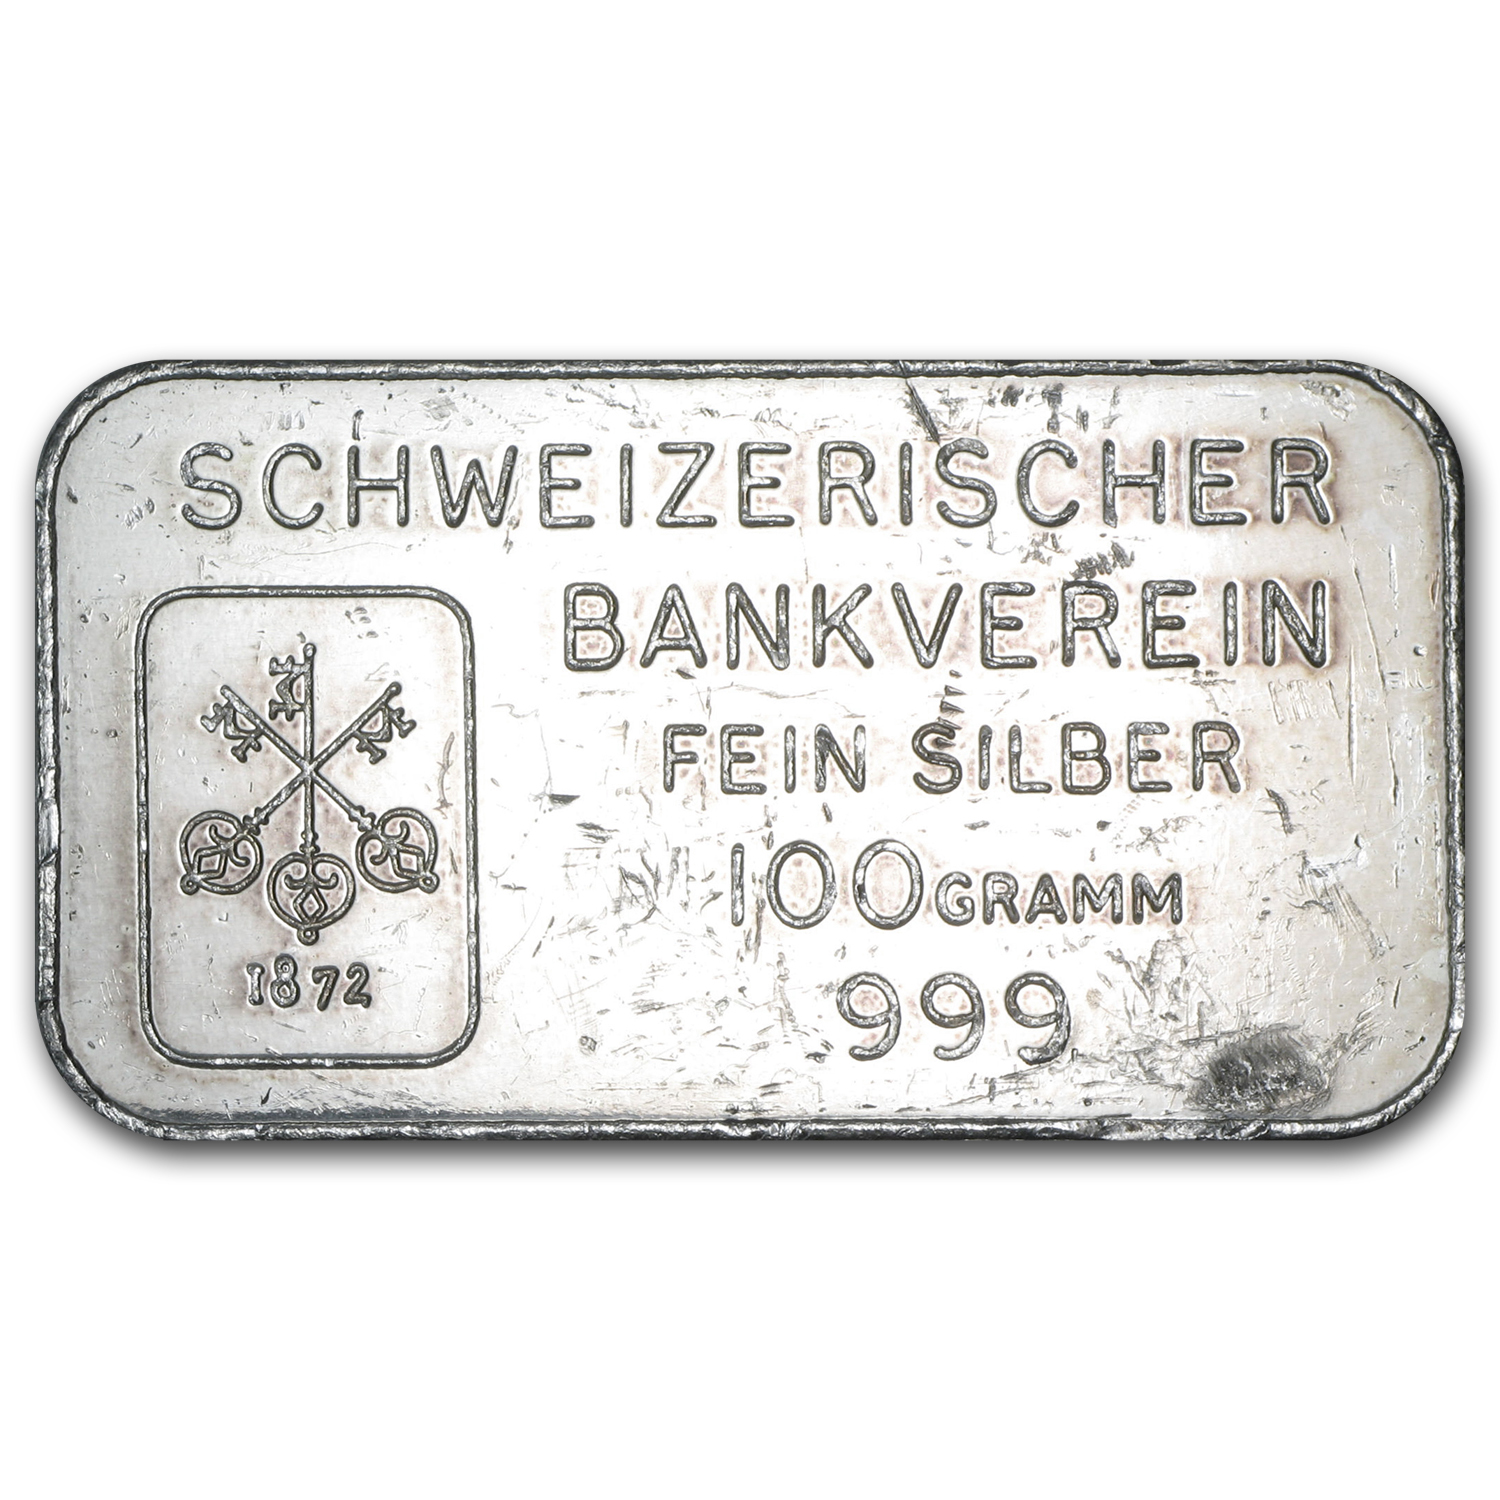 100 gram Silver Bars - Johnson Matthey (London/Schweizerischer)